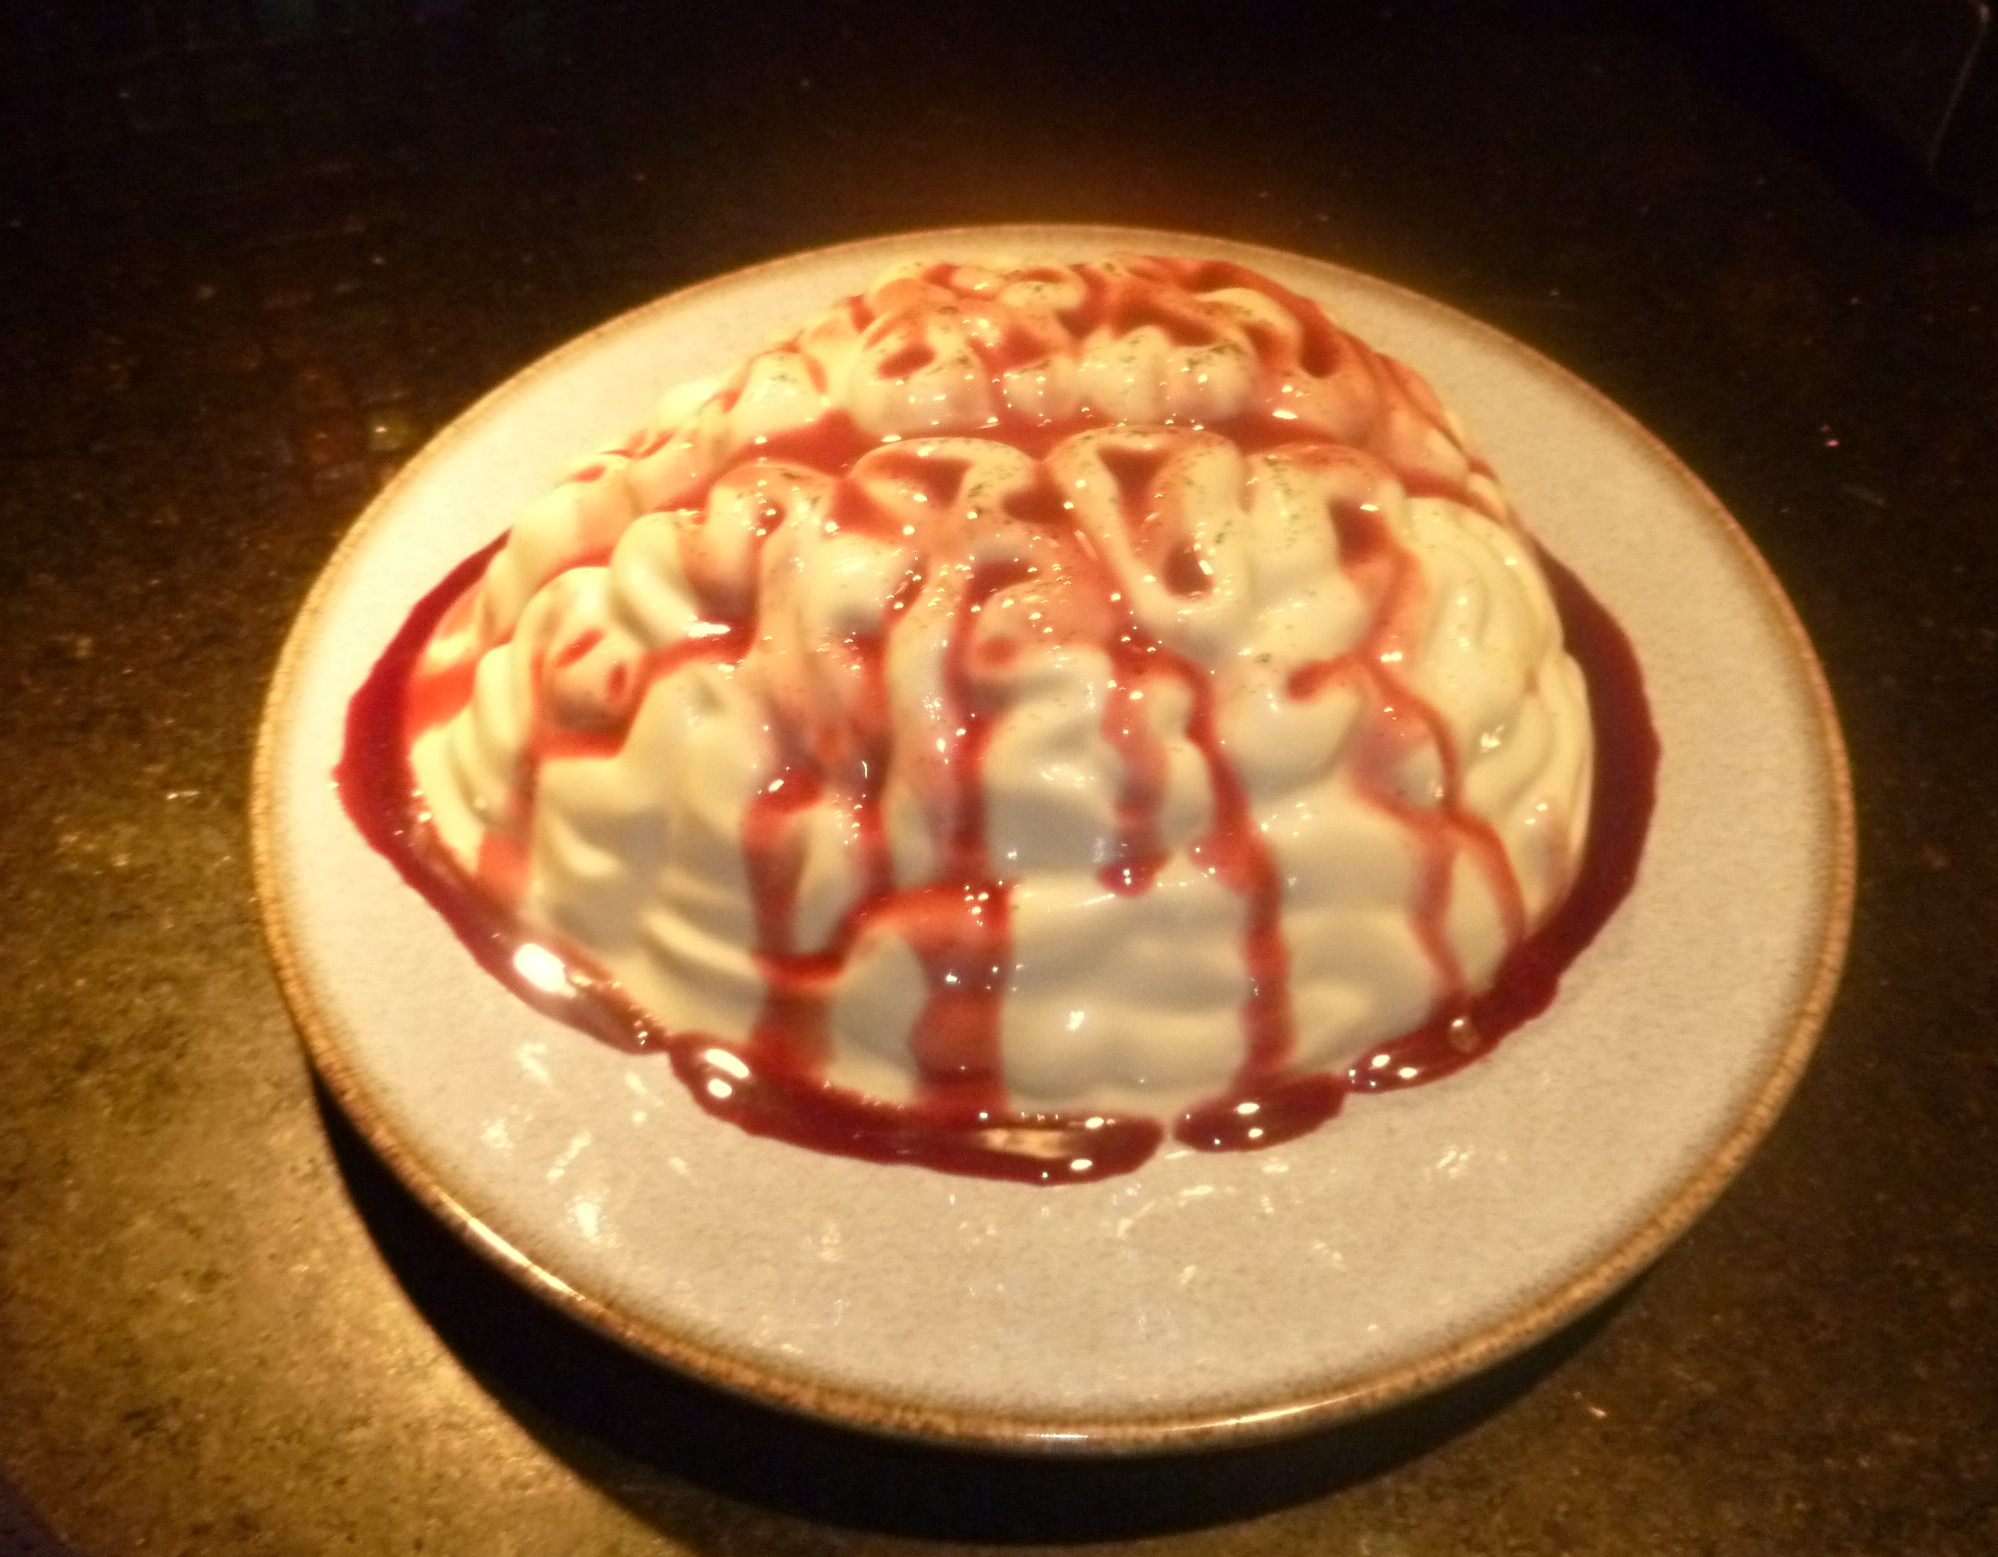 Homemade spooky halloween decorations - So Spooky So Sweet Brain Pudding With Raspberry Blood